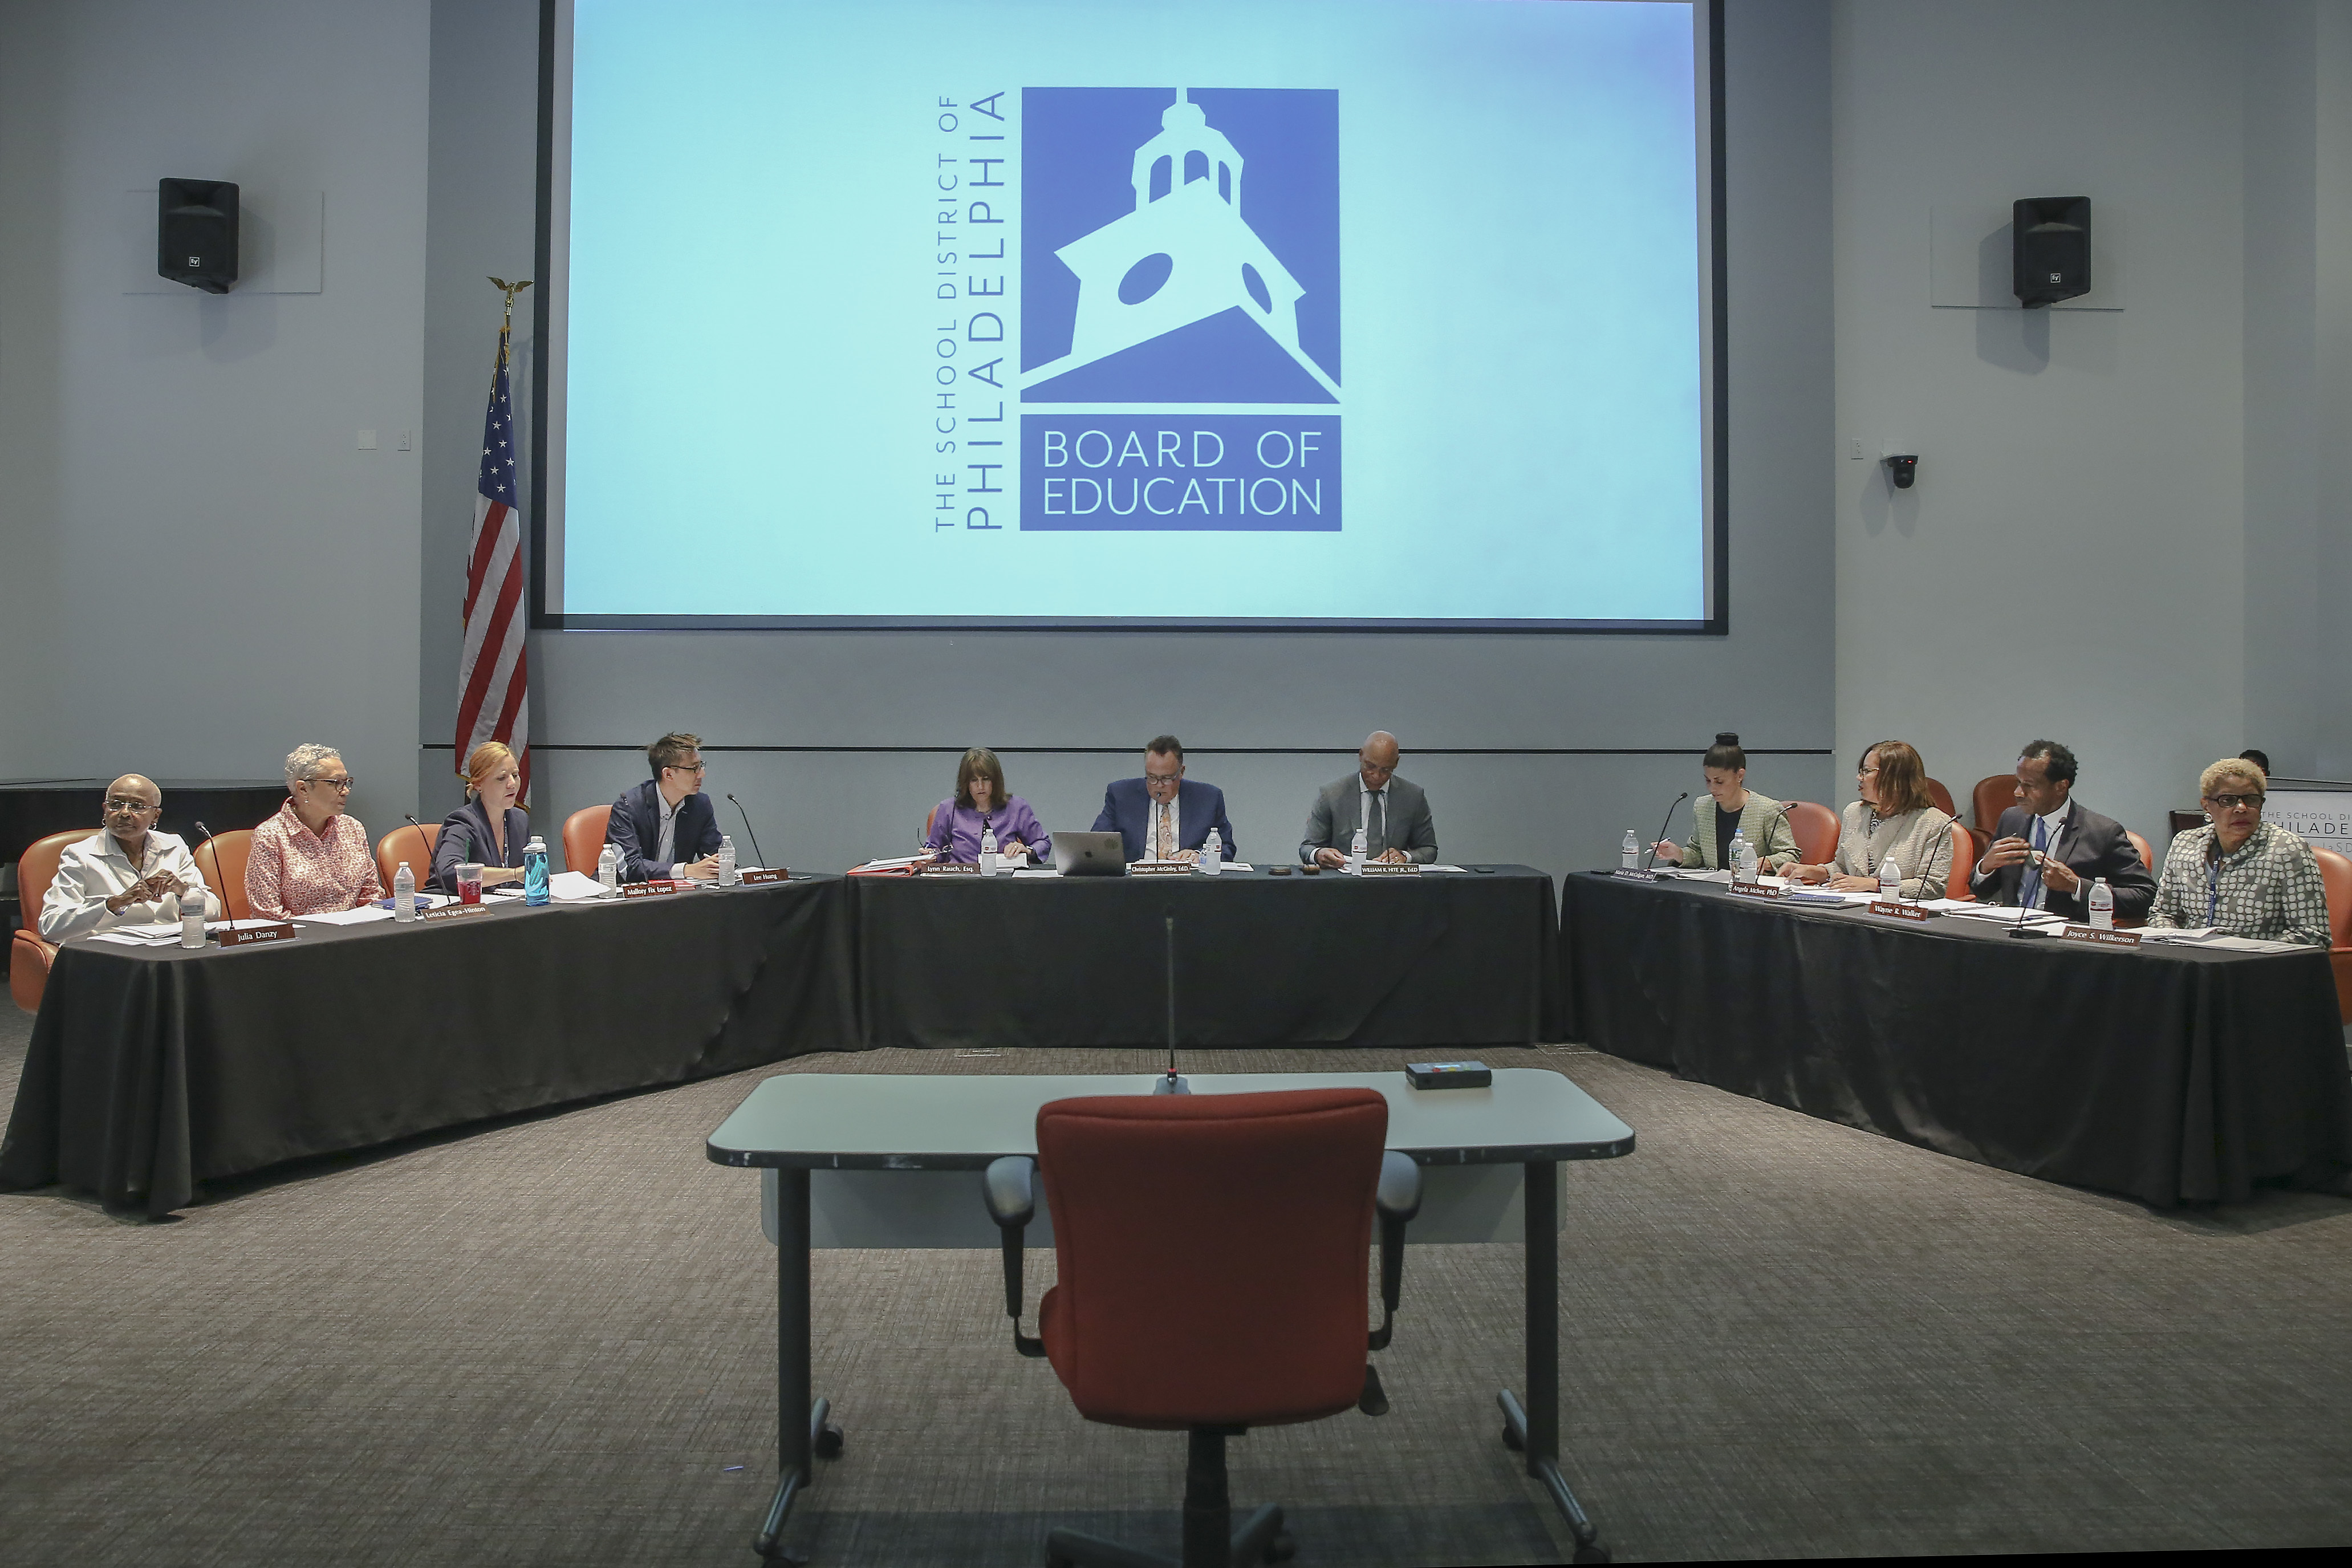 The Philadelphia School Board at their first meeting in July 2018.